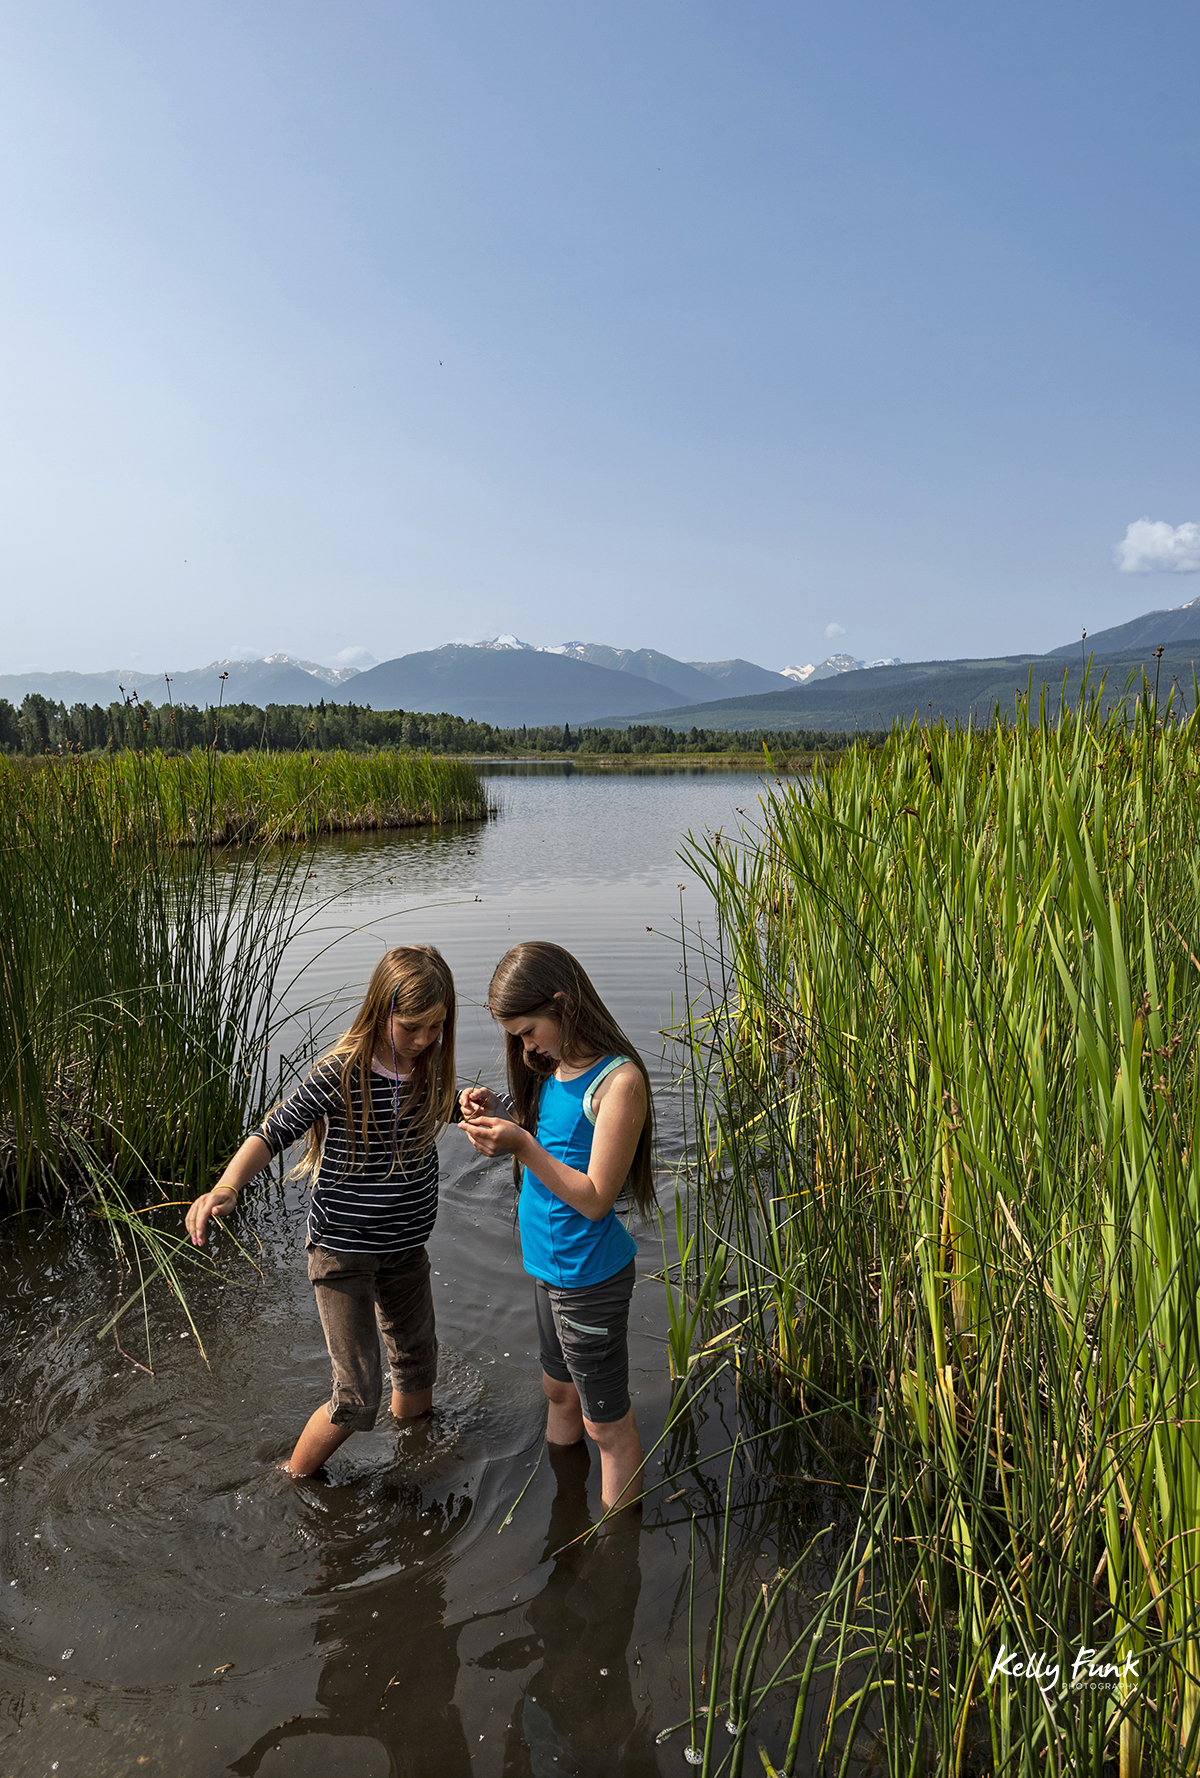 Two girls enjoy the cranberry marsh in the morning, Valemount, British Columbia, Canada